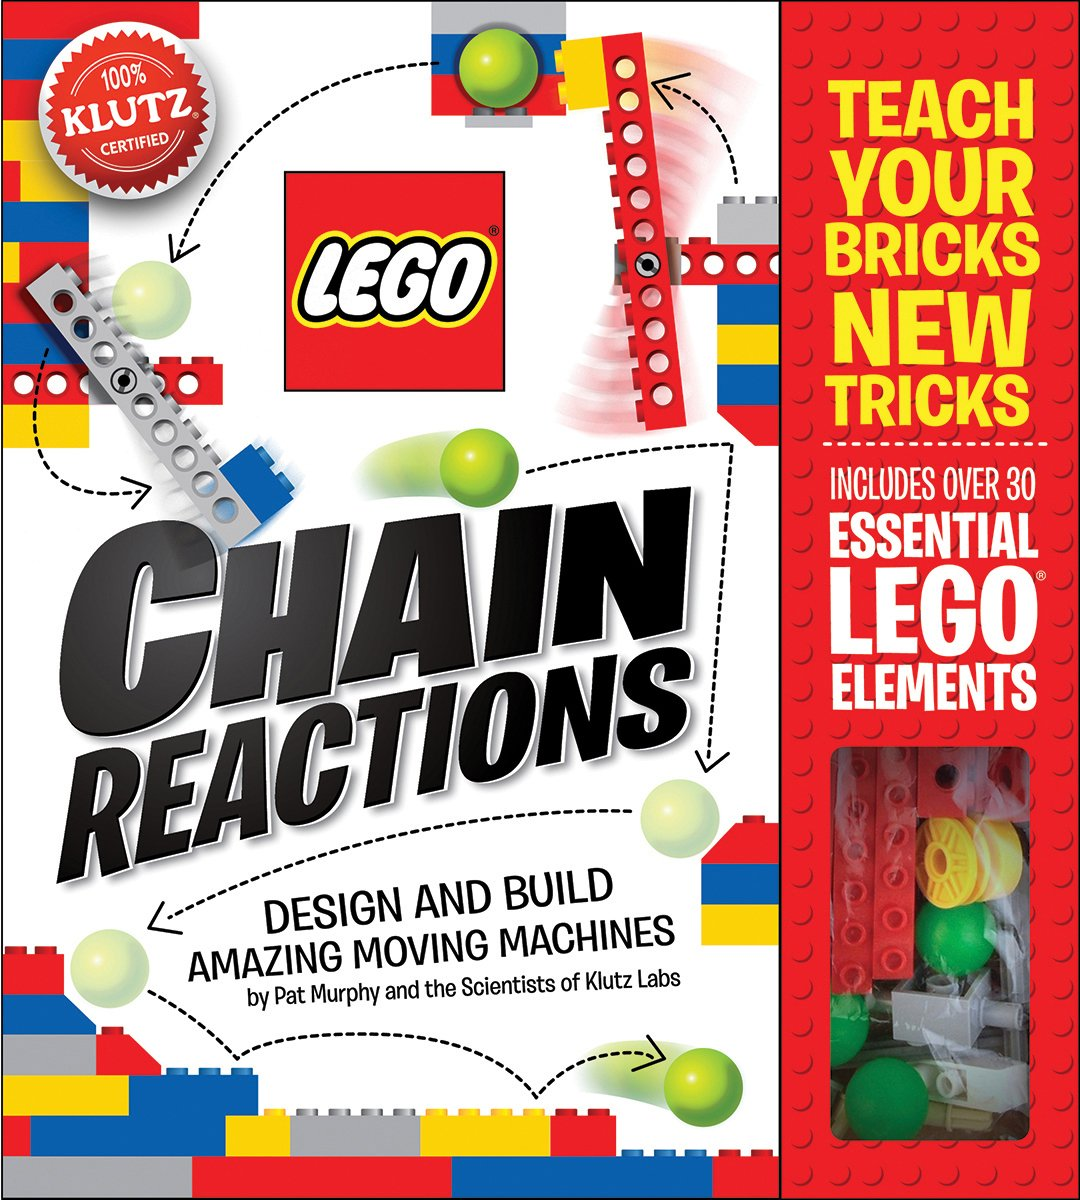 http://www.amazon.com/LEGO-Chain-Reactions-amazing-machines/dp/0545703301/ref=sr_1_6?s=books&ie=UTF8&qid=1418407784&sr=1-6&keywords=lego+books